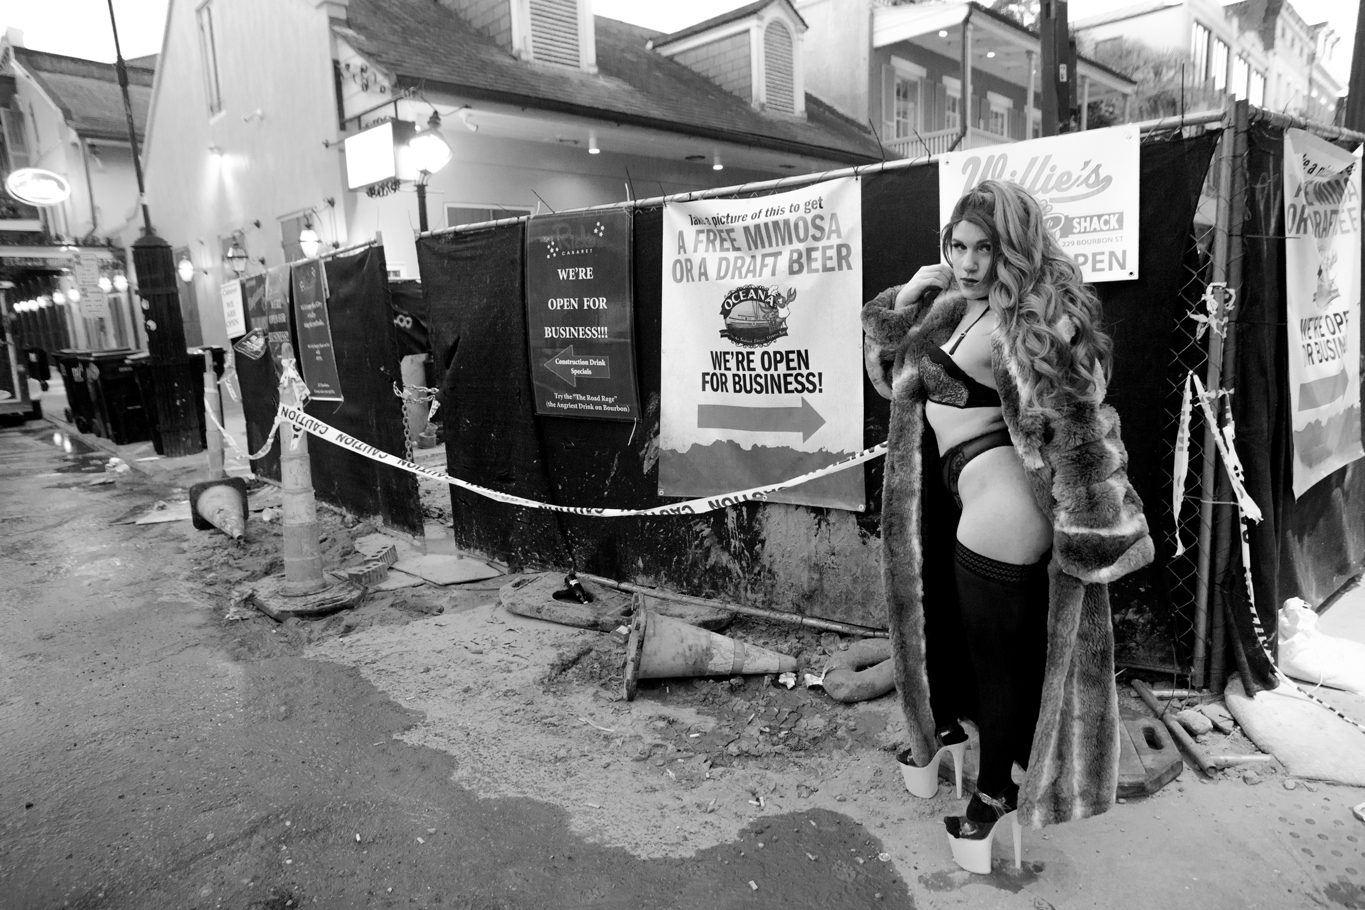 ALL THAT IS EXTRA: EXCAVATING THE VIEUX CARRÉ'S STRIP CLUB DISPUTES